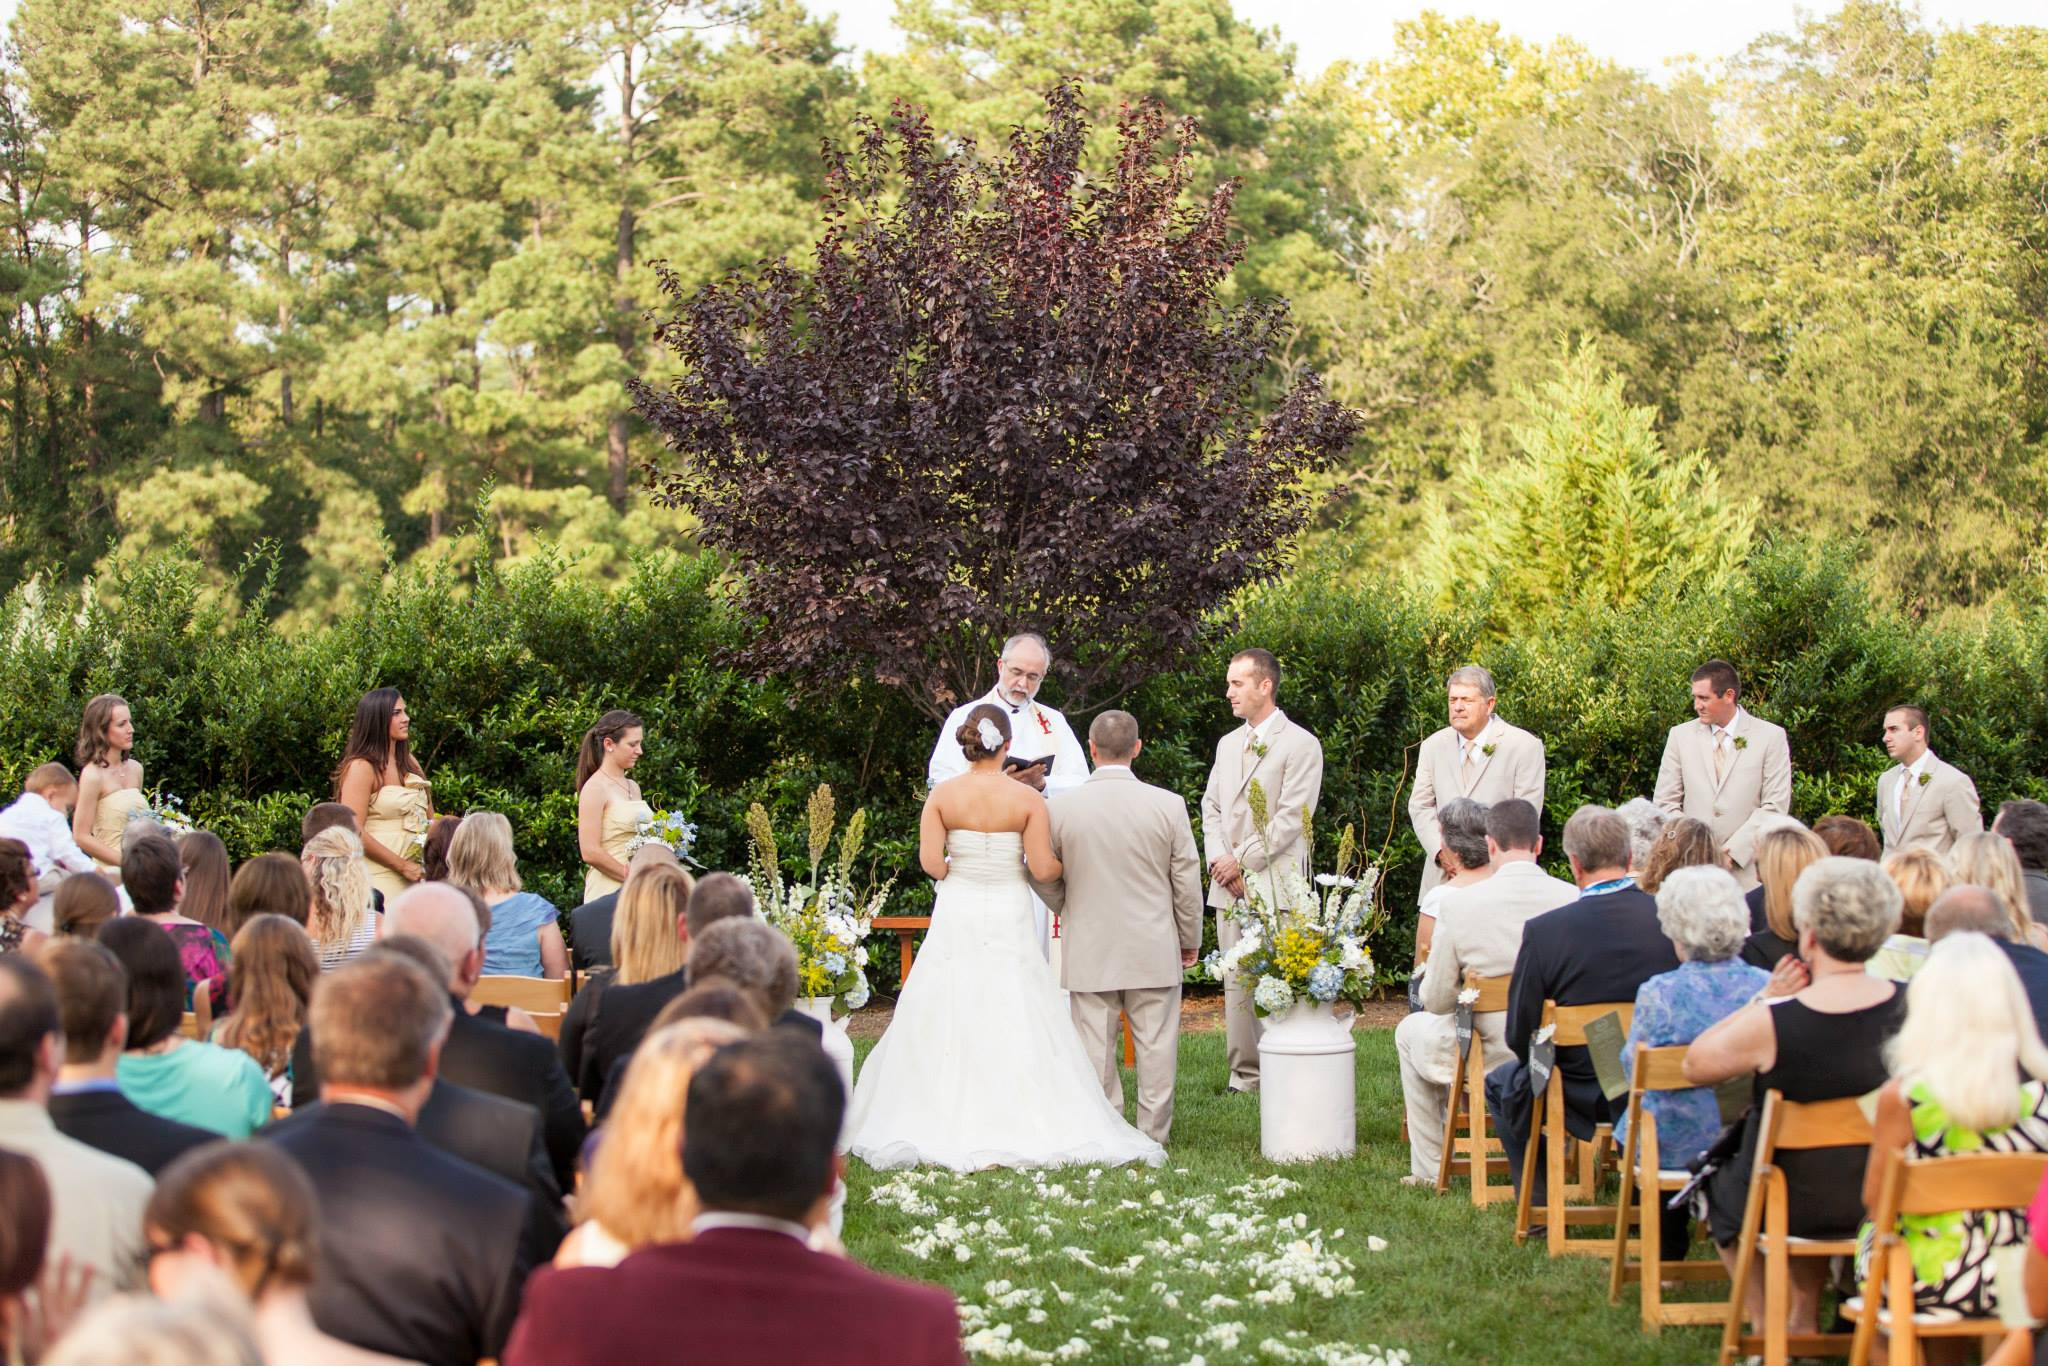 Outdoor Wedding Venue Photo Gallery